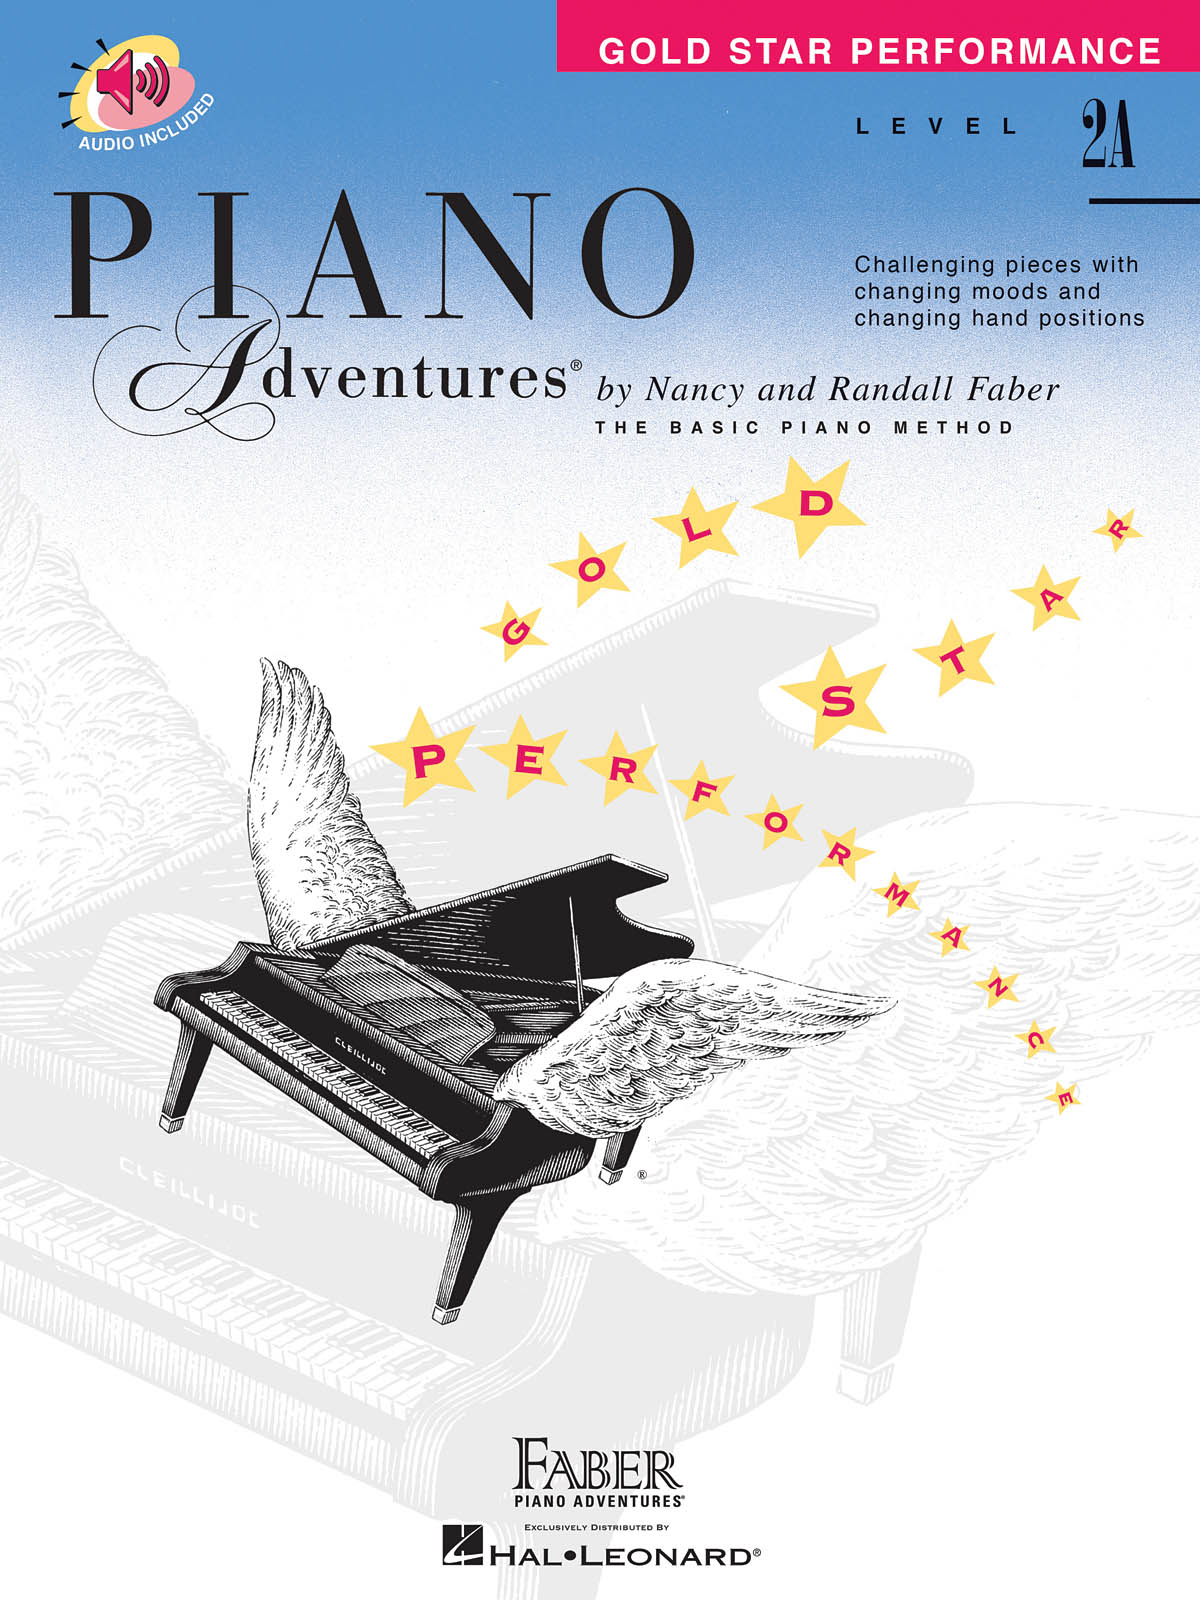 Faber Piano Adventures, Gold Star Performance, Level 2A